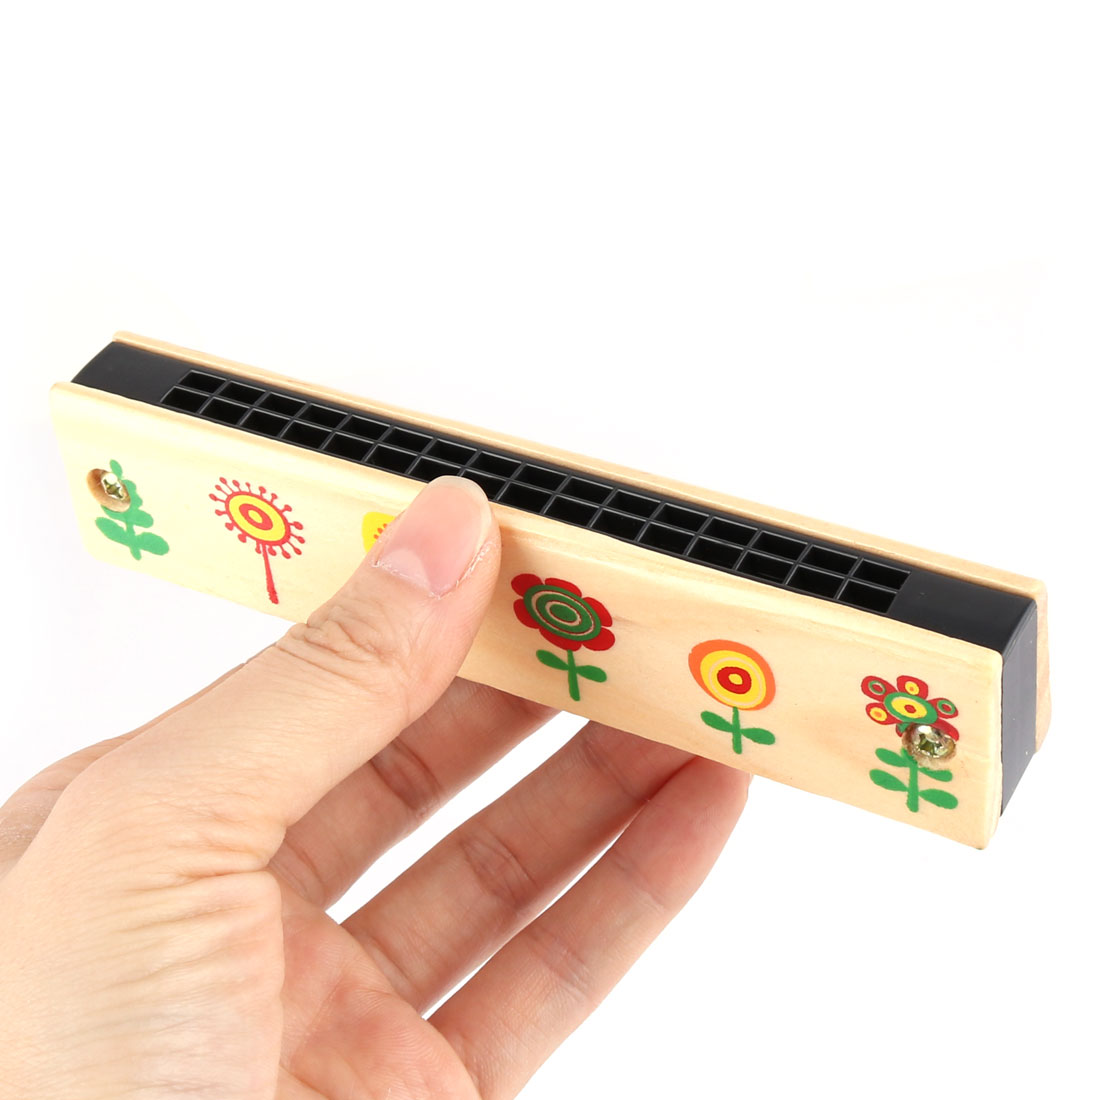 Unique BargainsWooden Flower Pattern Early Education Dual Rows Harmonica Musical Instrument - image 2 of 3